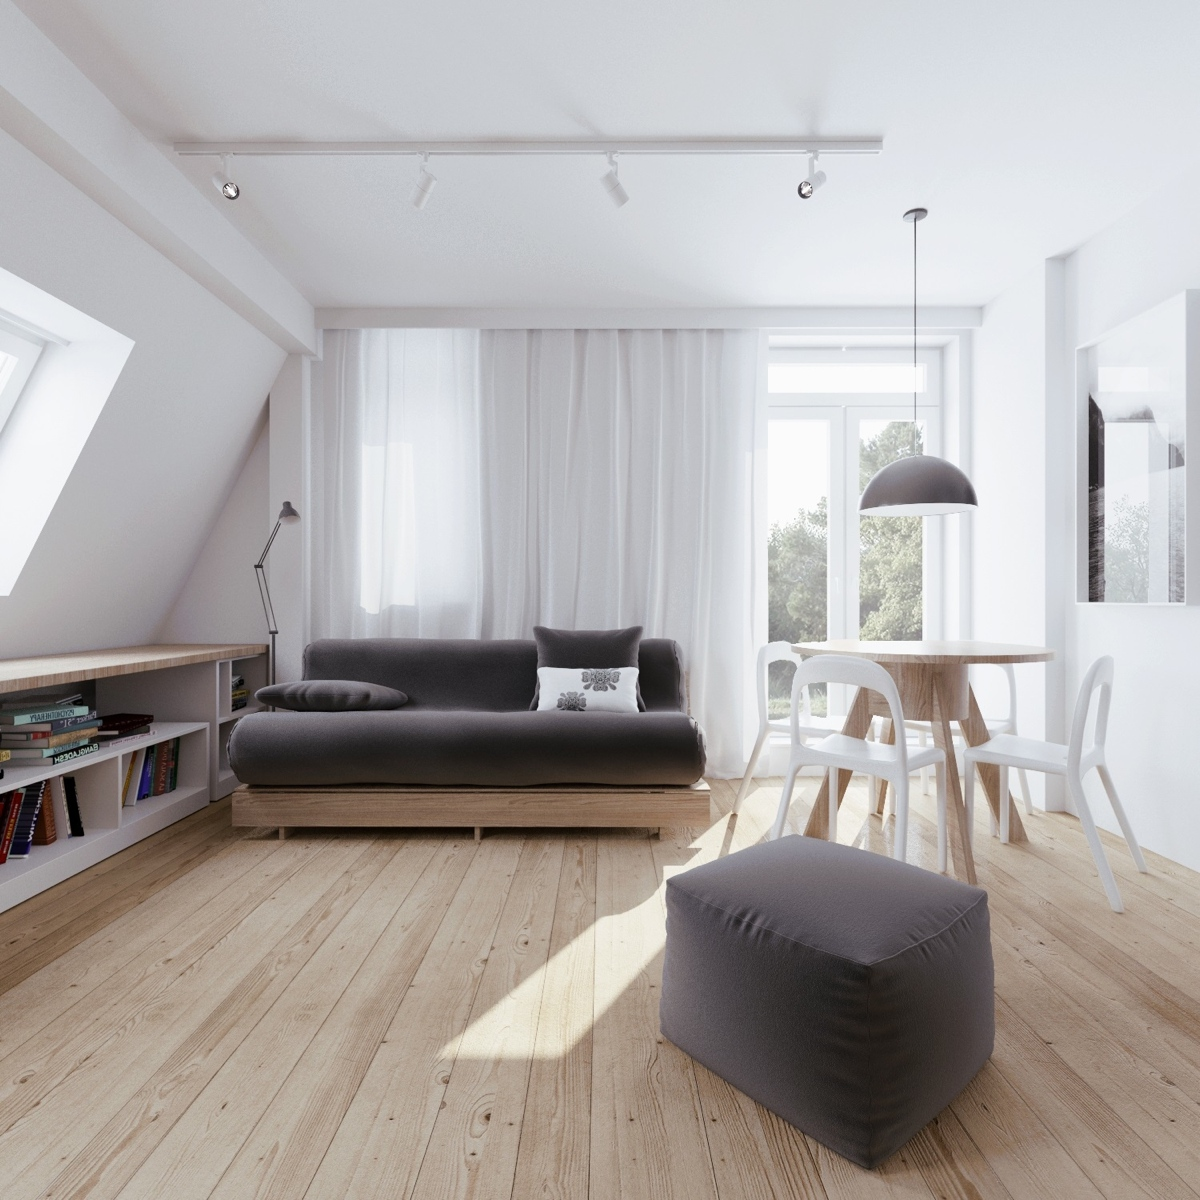 7 Living Room Ideas For People Living In Small Apartments: Beautiful Attic Apartment With Clever Design Features